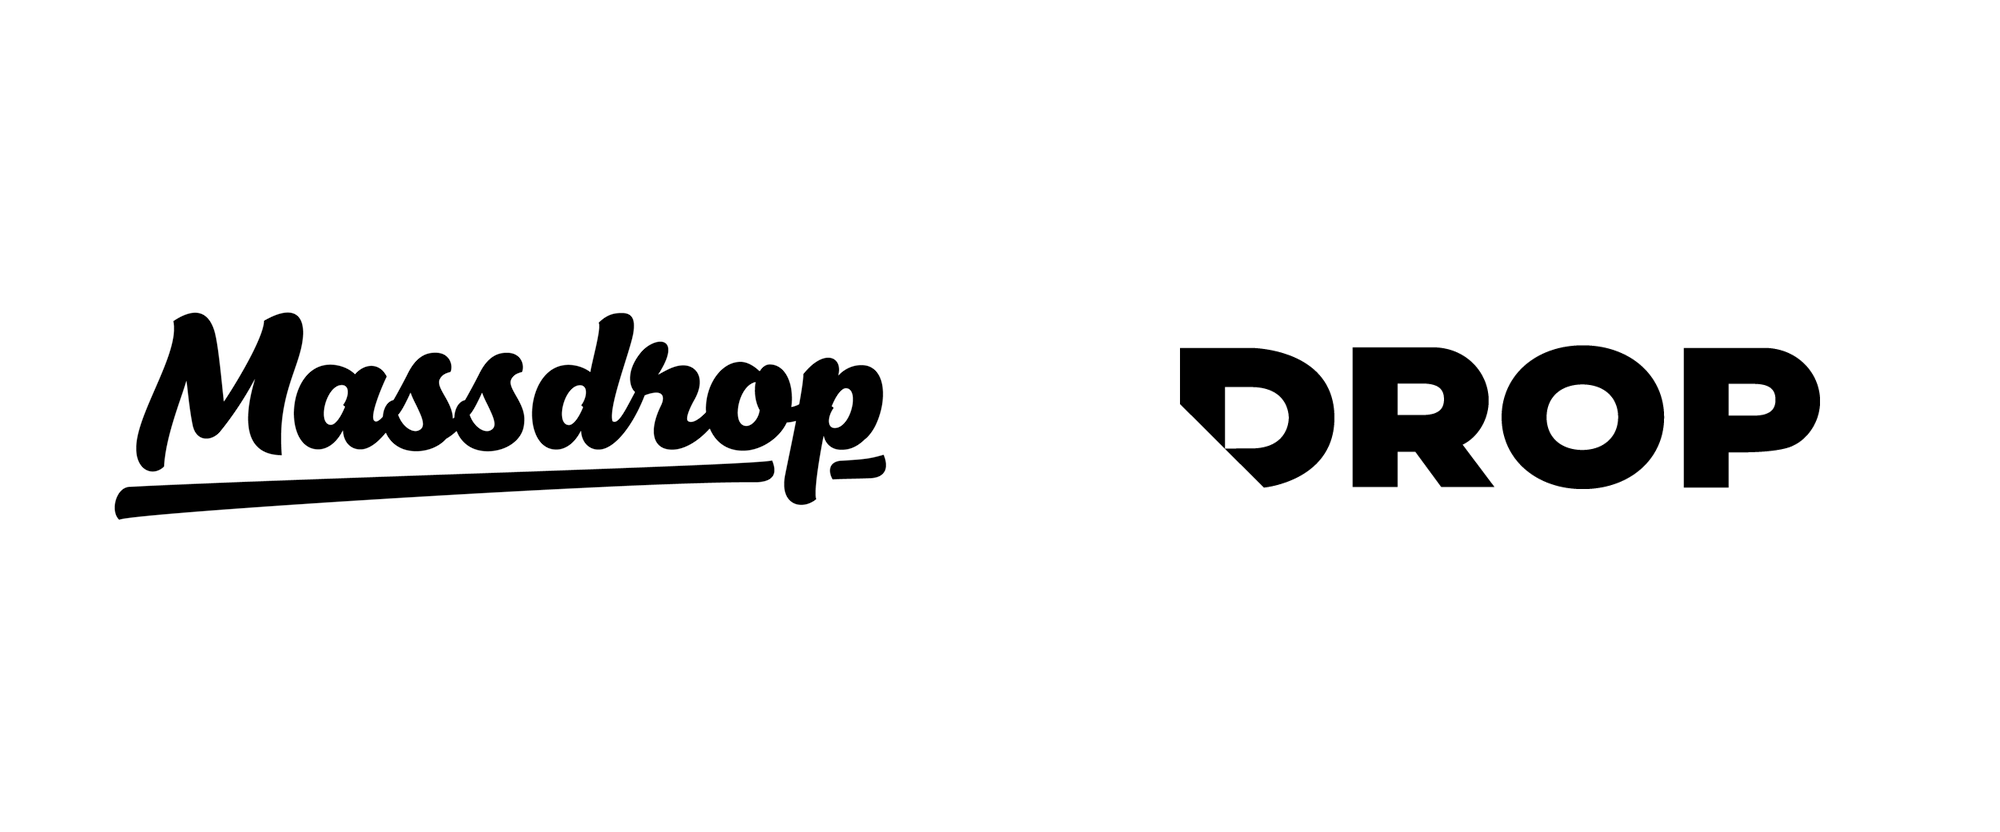 New Name and Logo for Drop